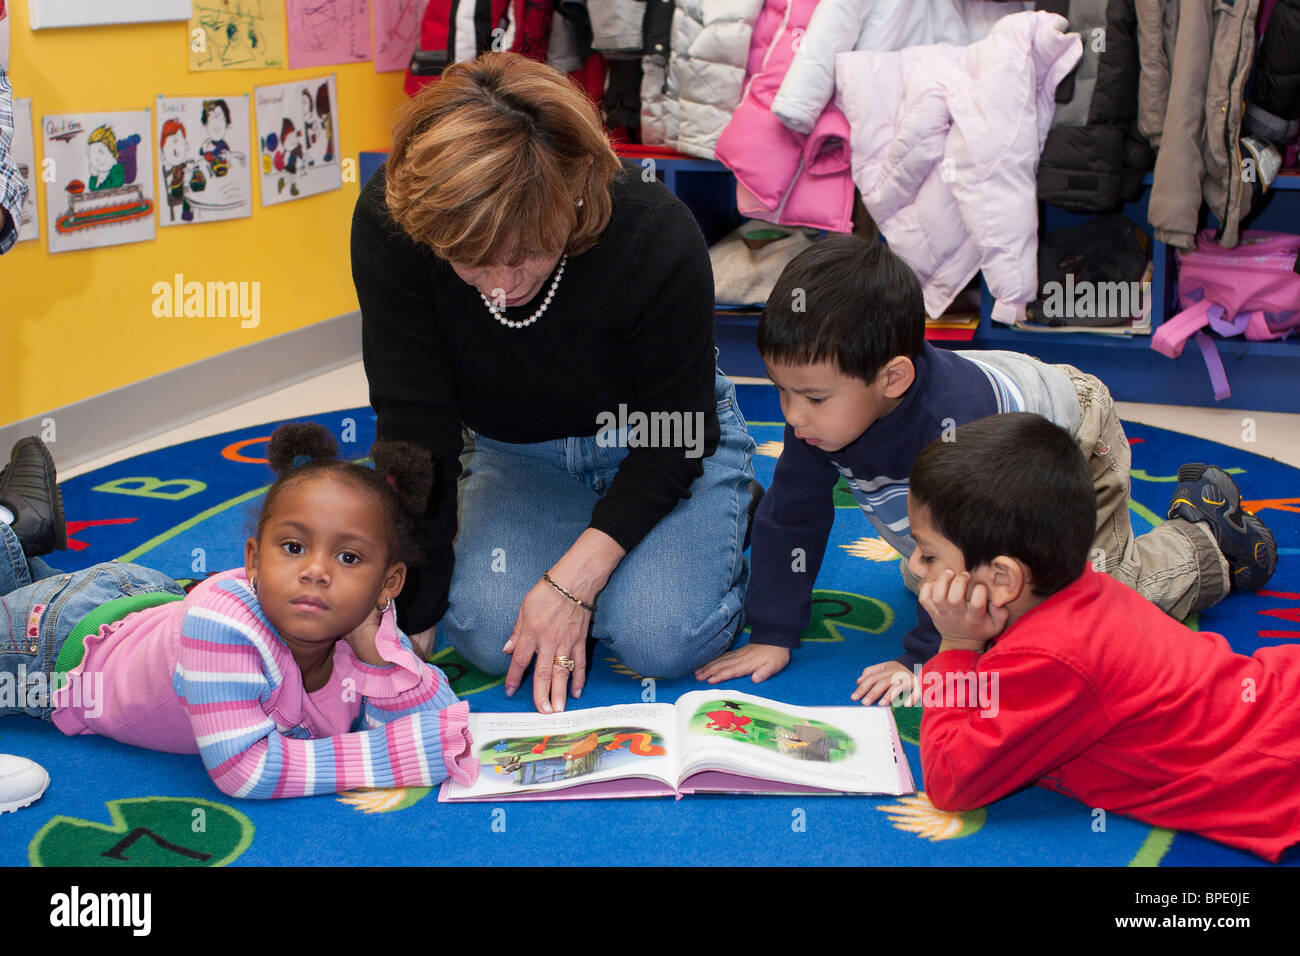 Preschool Teacher Reading A Book To Some Of Her 4 Year Old Students On The Floor